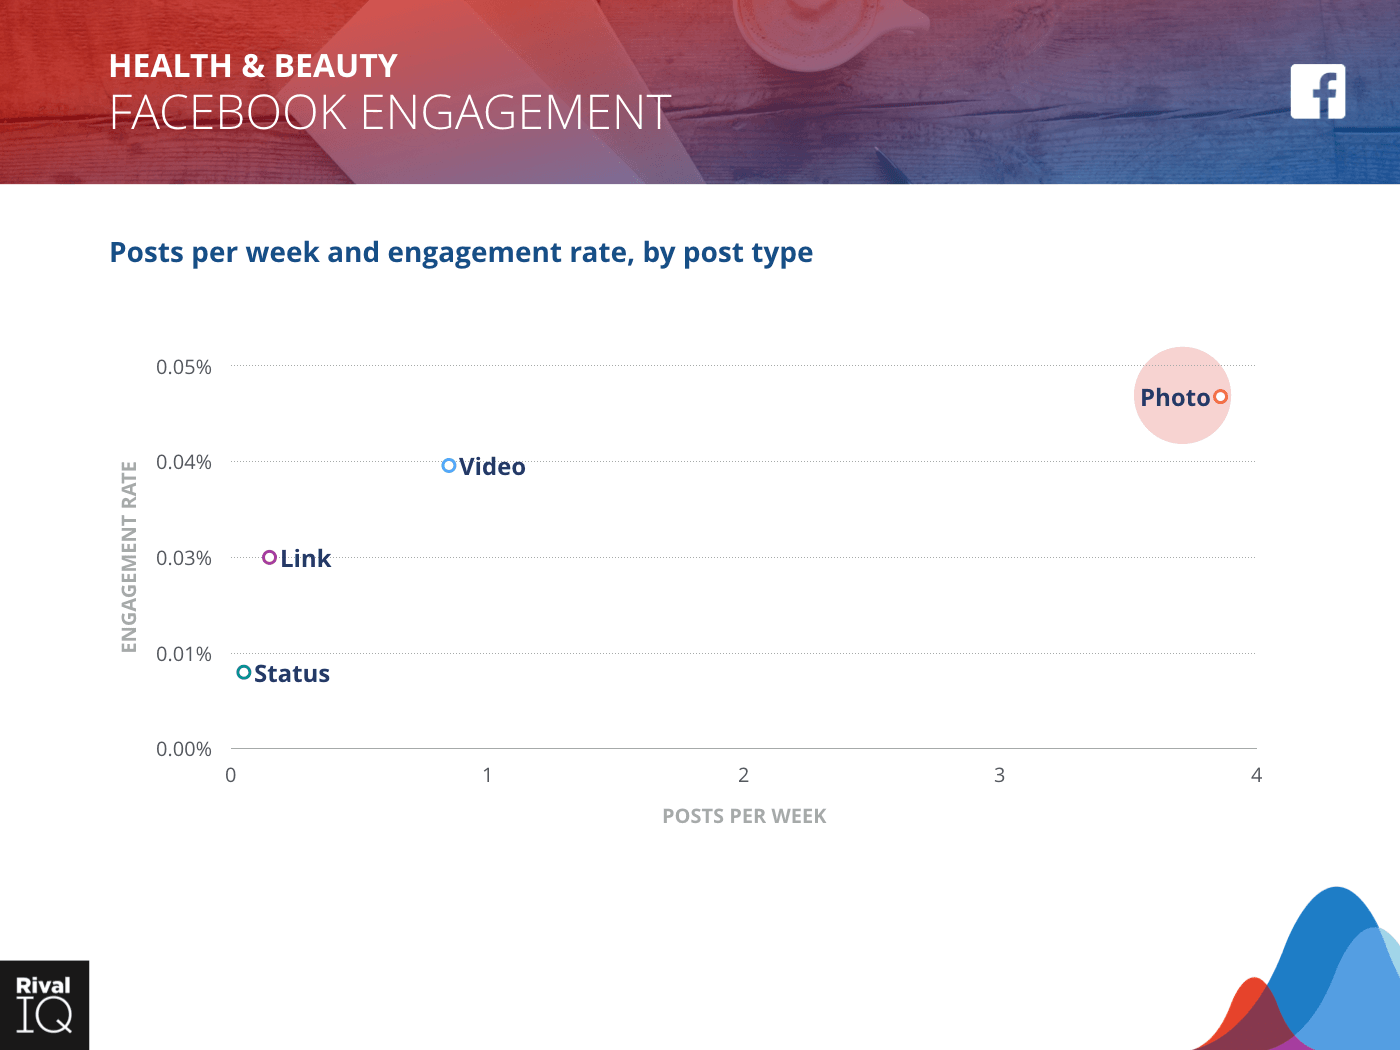 Health & Beauty Industry: scatter graph, average post per week by type and engagement rate on Facebook